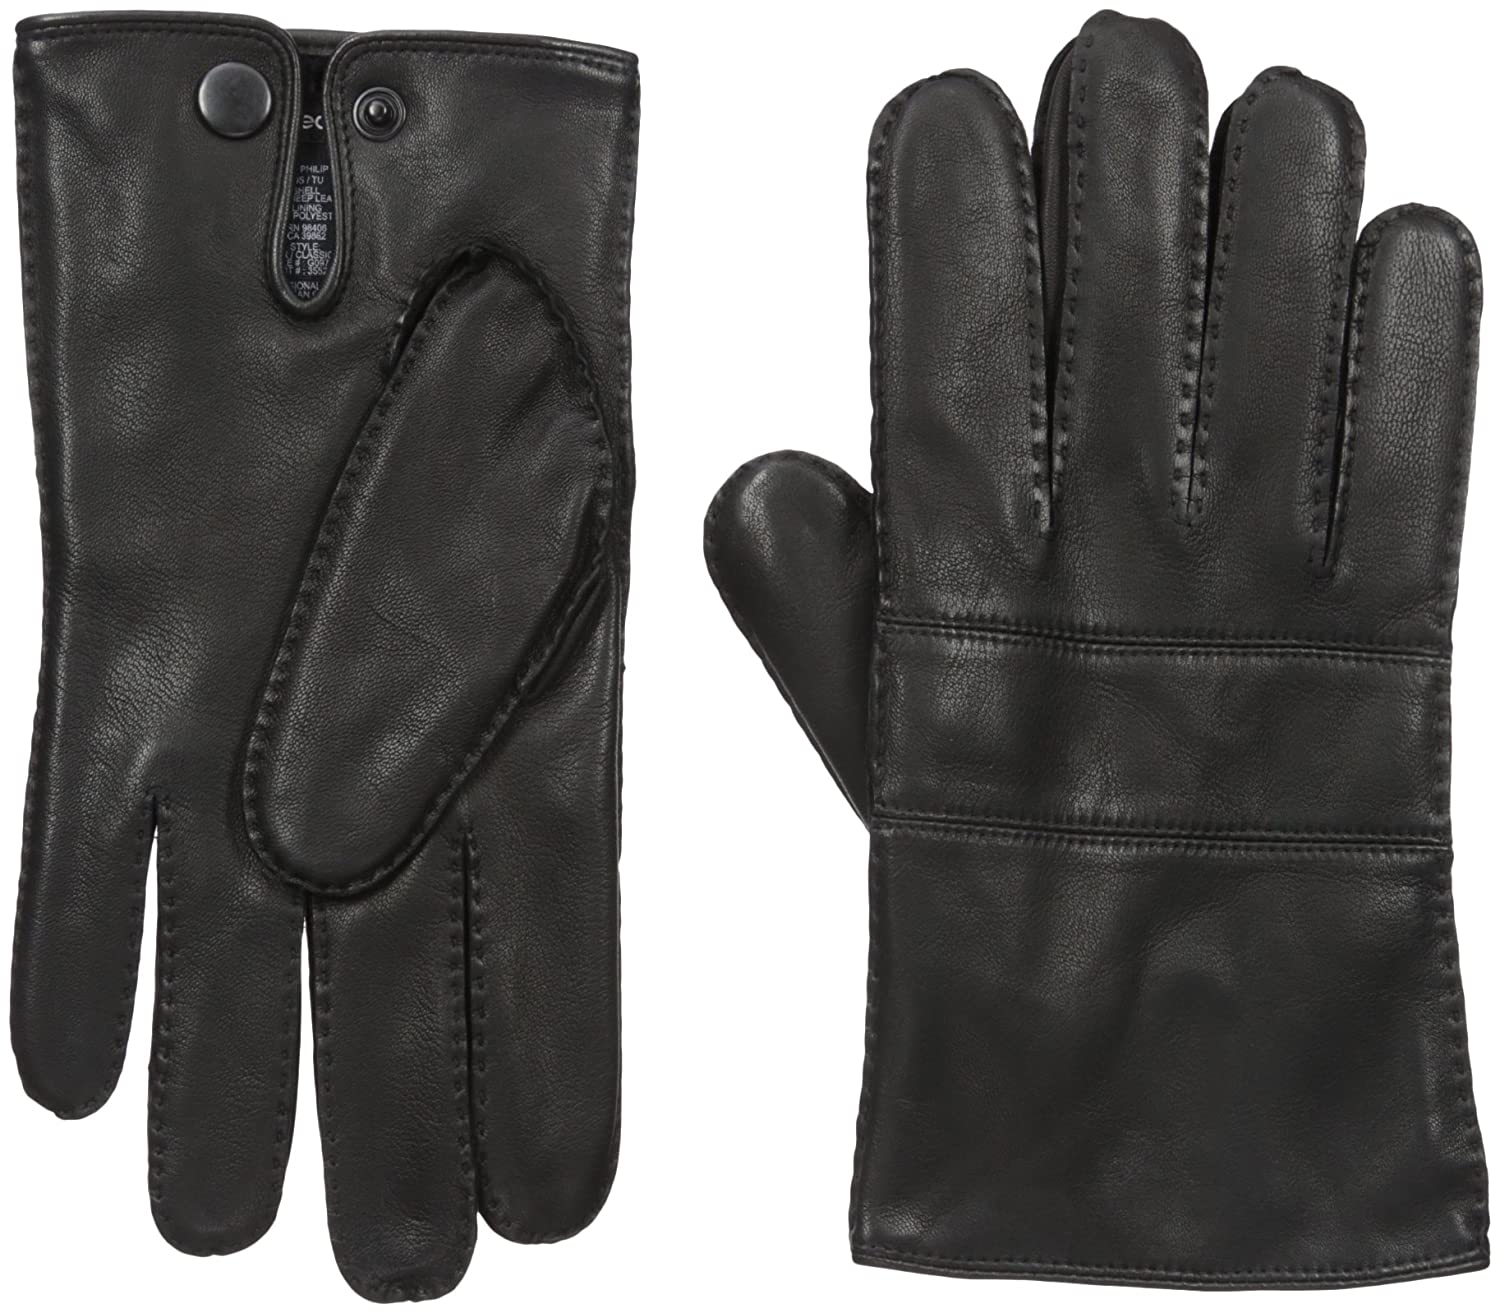 Theory Men's Grevor Classic Nappa Leather Gloves Black One Size Theory mens child code G0970007